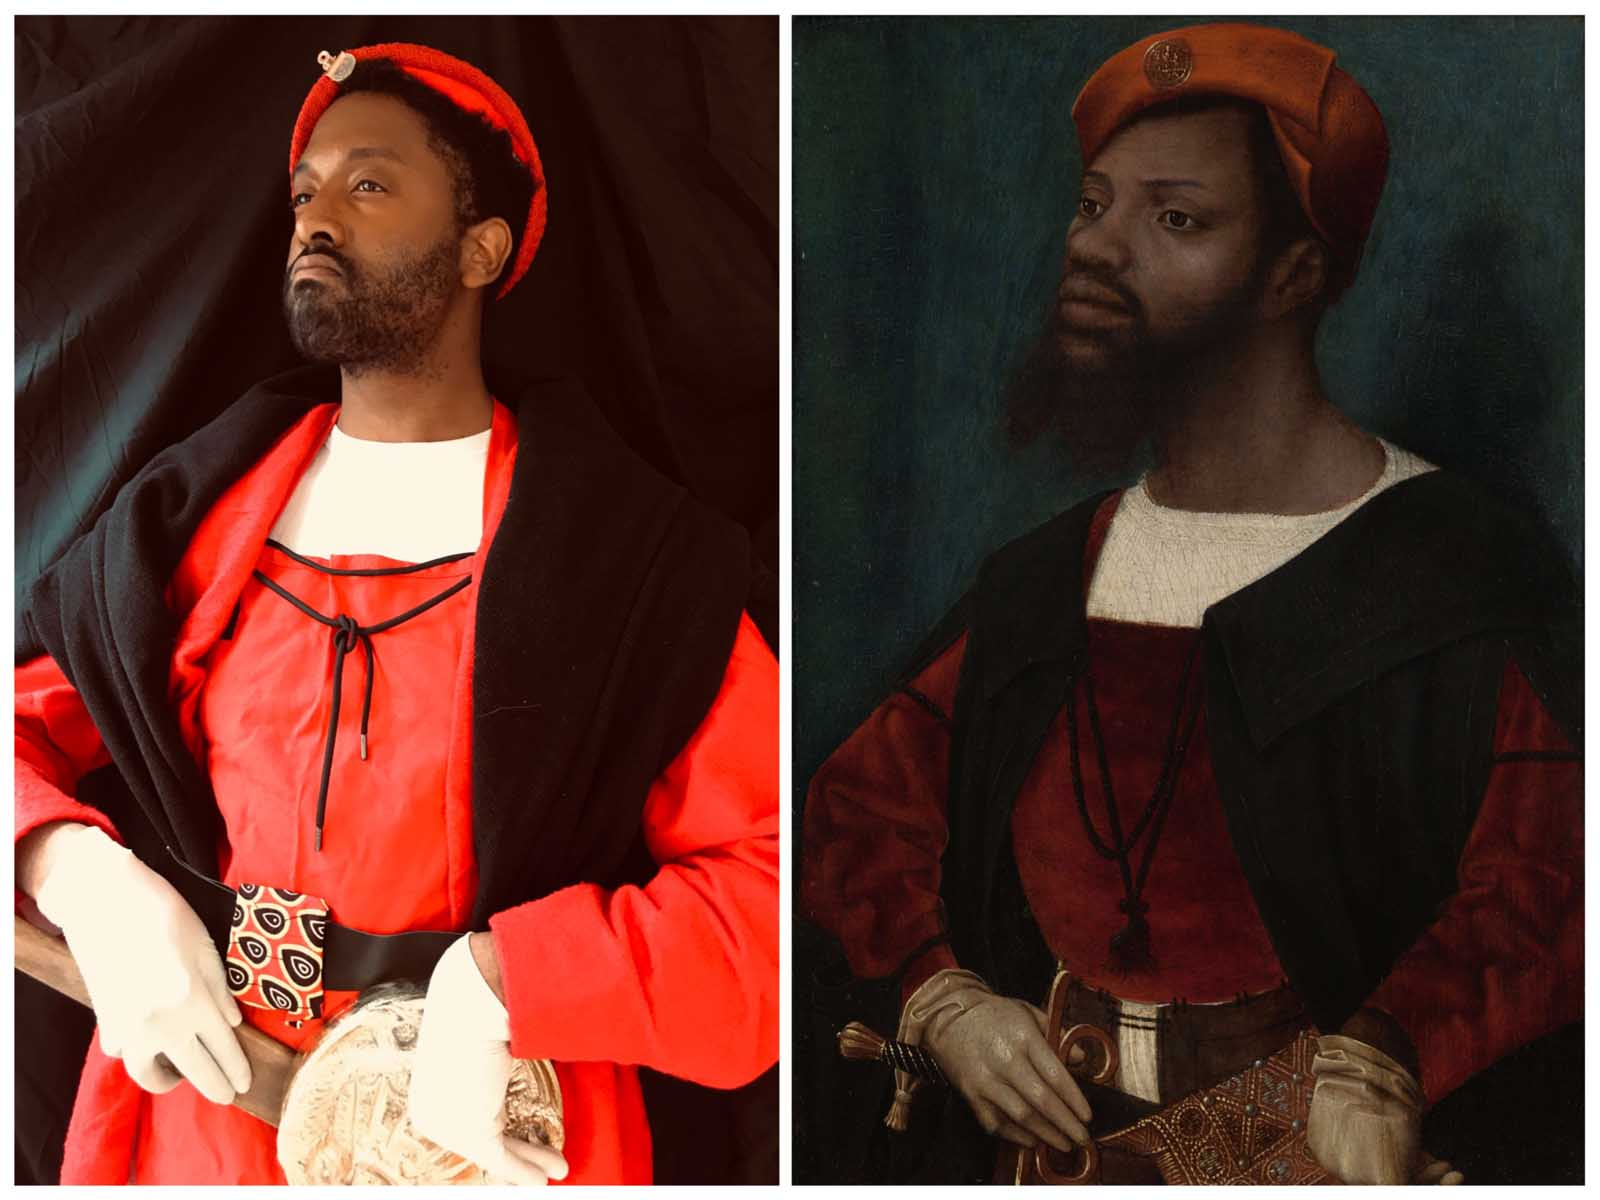 a duo picture comprising a photo and painting both of a Black man dressed in the clothes of a Renaissance gentleman